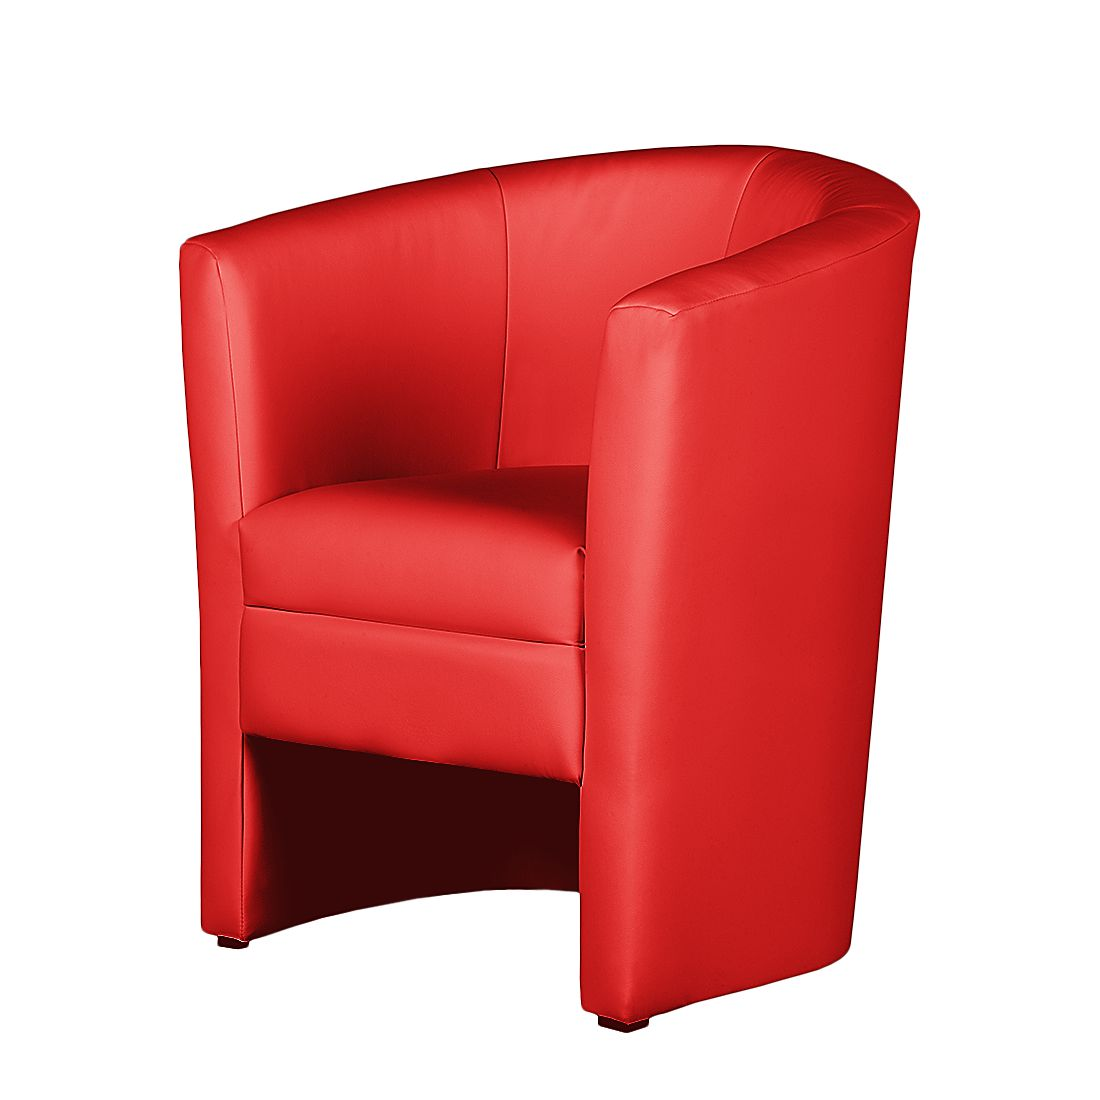 Fauteuil Sinclair I - Imitation cuir - Rouge, mooved